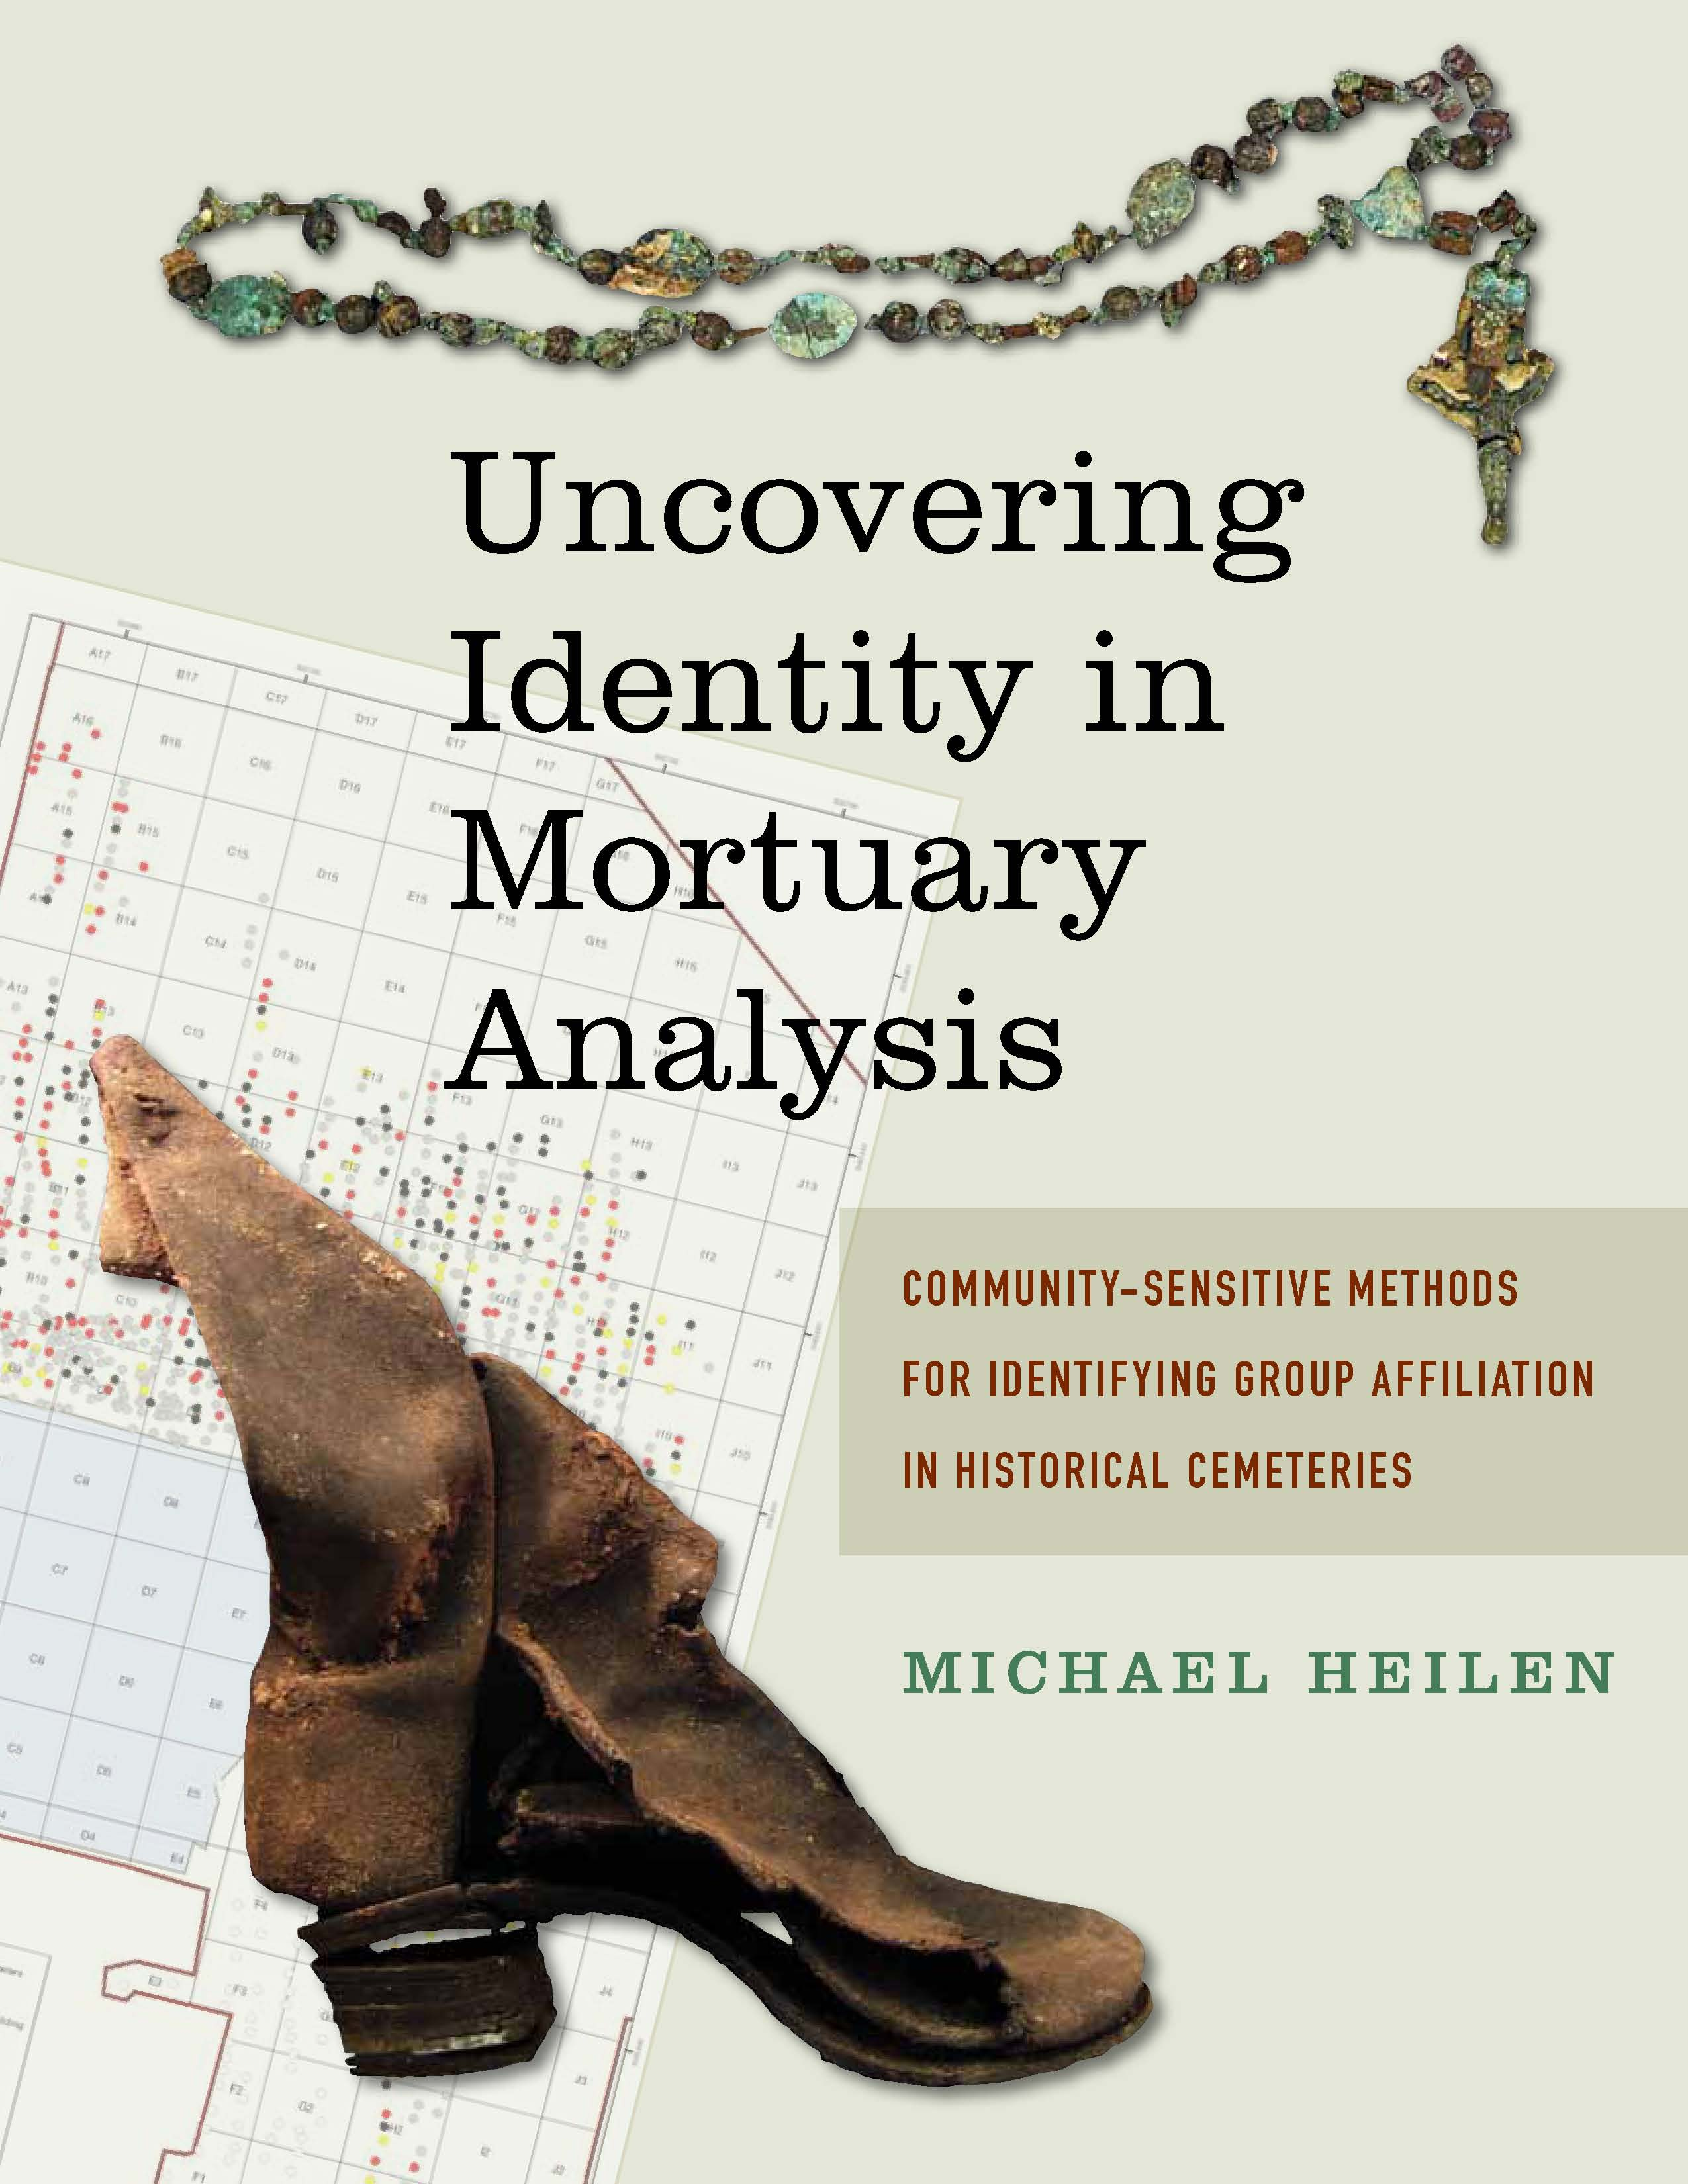 Uncovering Identity in Mortuary Analysis: Community-Sensitive Methods for Identifying Group Affiliation in Historical Cemeteries